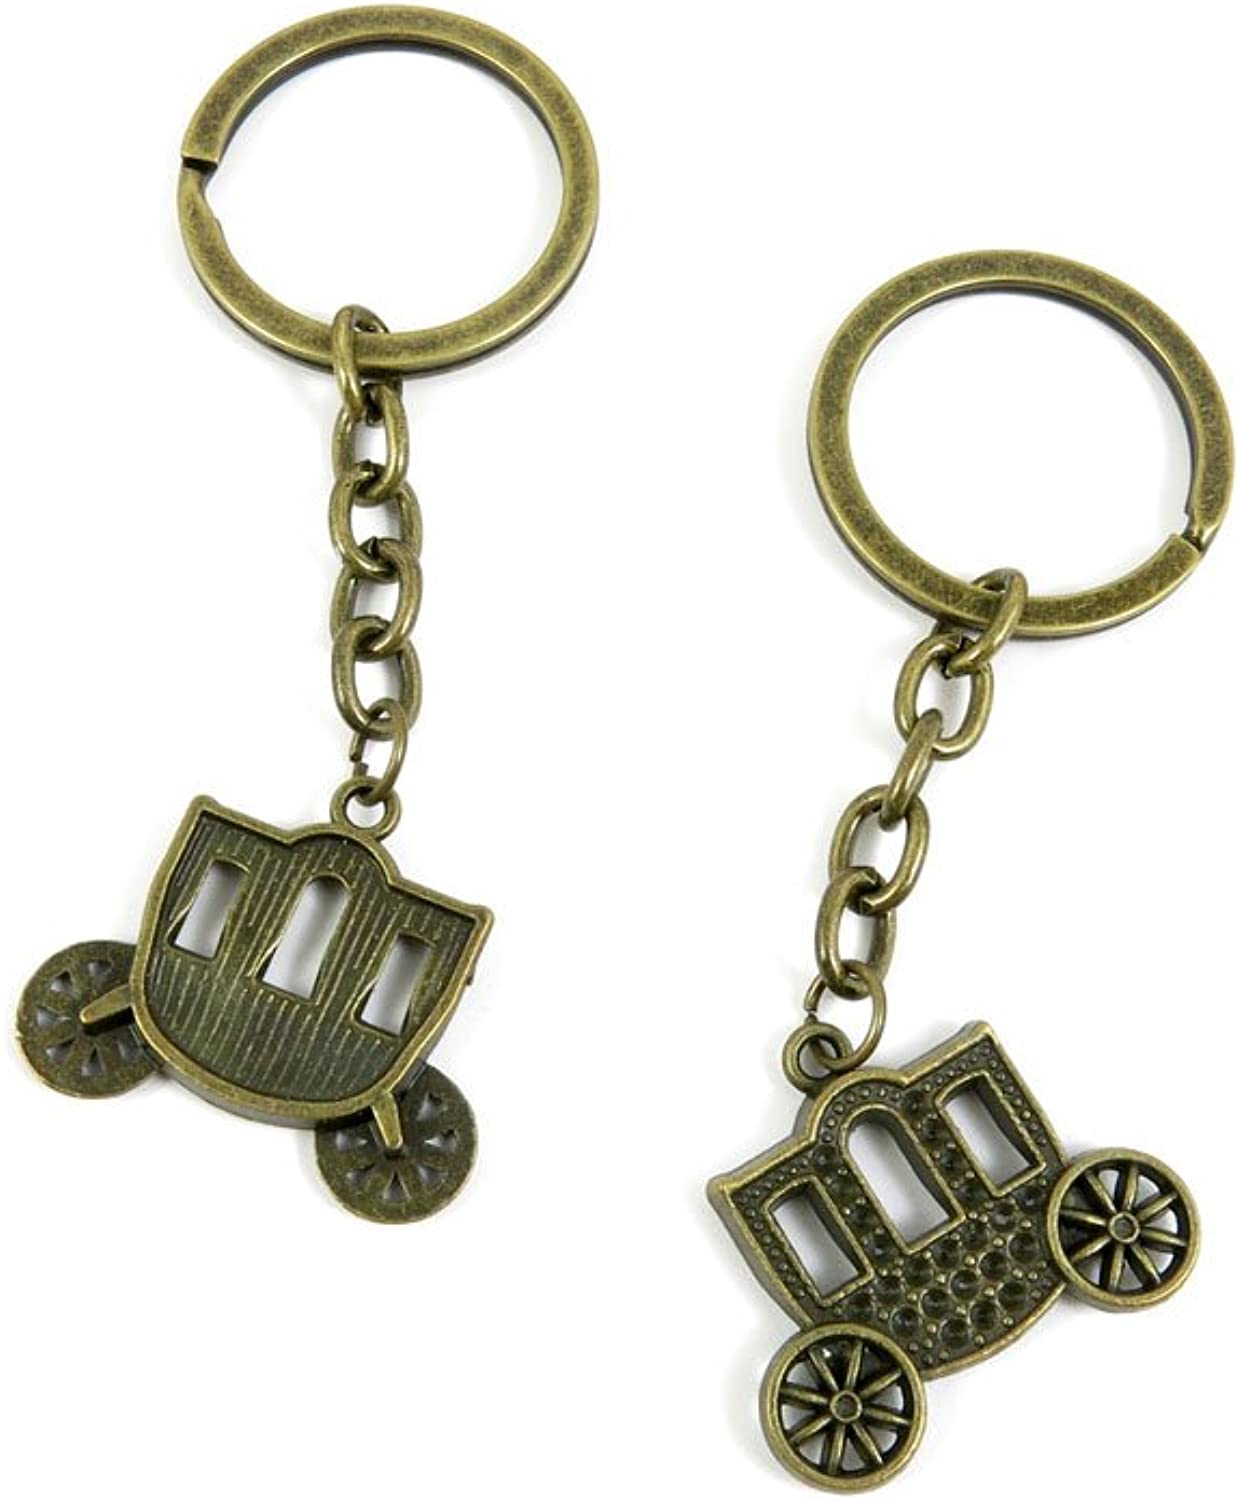 80 PCS Keyring Car Door Key Ring Tag Chain Keychain Wholesale Suppliers Charms Handmade J6OX7 Horse Carriages